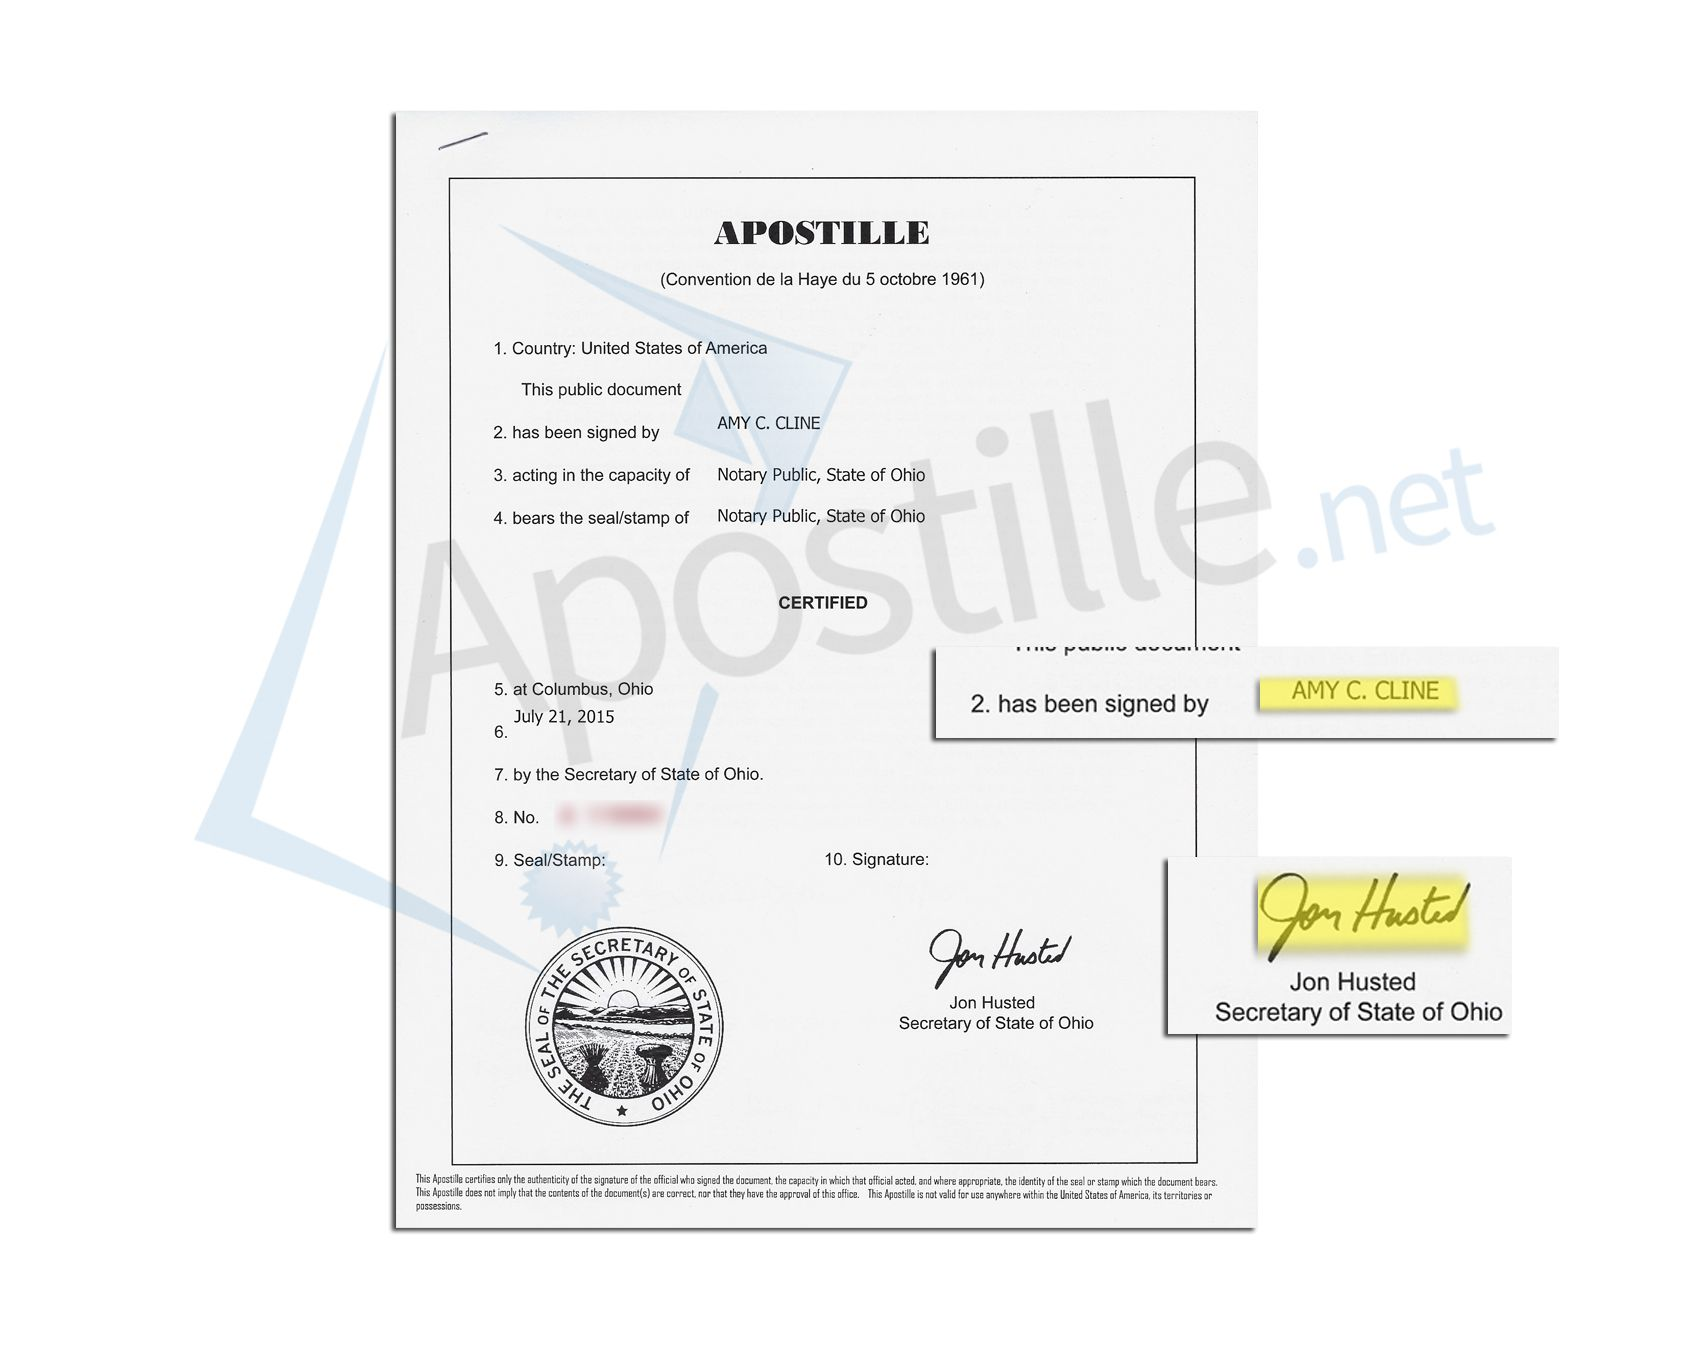 State of ohio certificate of good standing issued by jon husted state of ohio certificate of good standing issued by jon husted secretary of state state of ohio sample apostille pinterest ohio and certificate xflitez Images